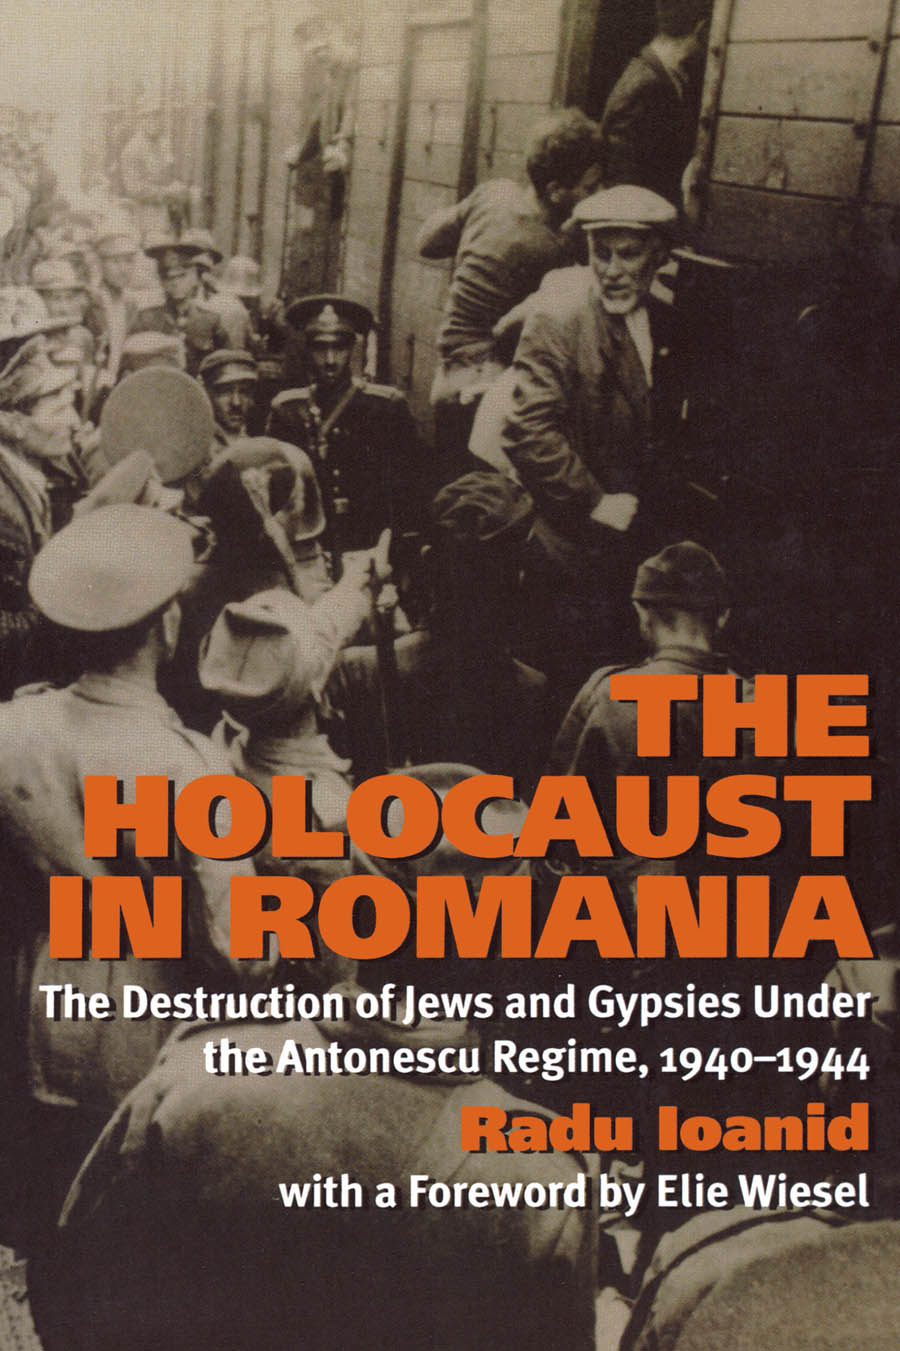 The Holocaust (The History of the Jews in Romania, 4) 1st Edition Pdf Free Download